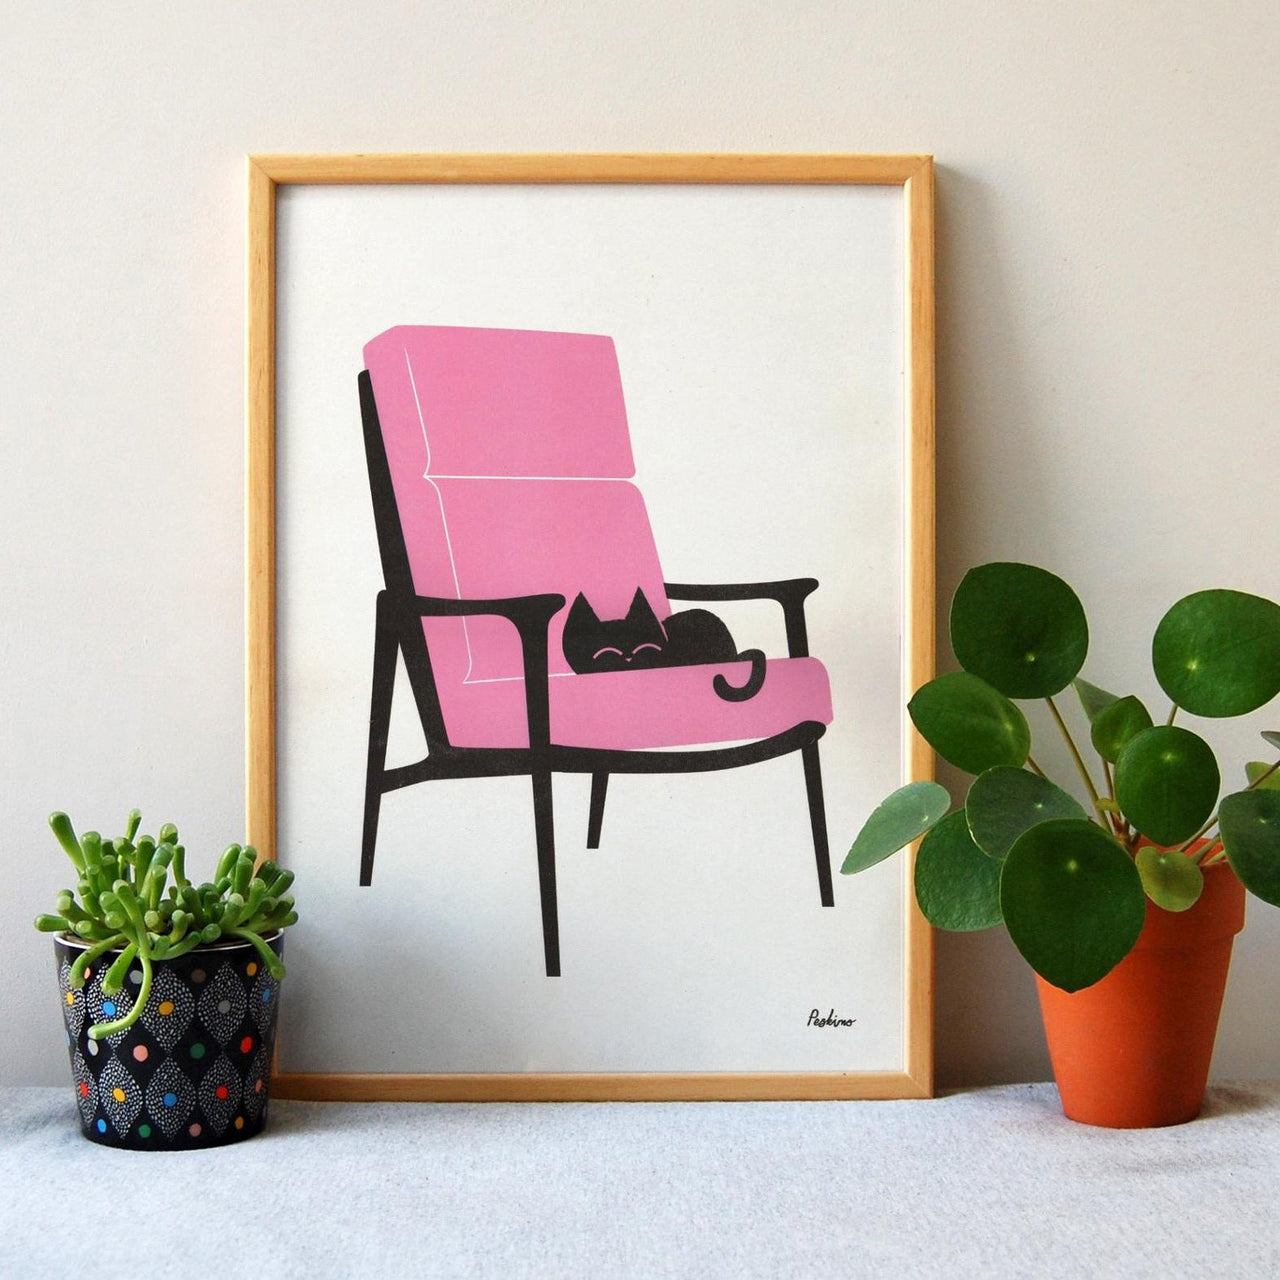 'Cat Nap Armchair' risograph print on recycled paper by Peskimo